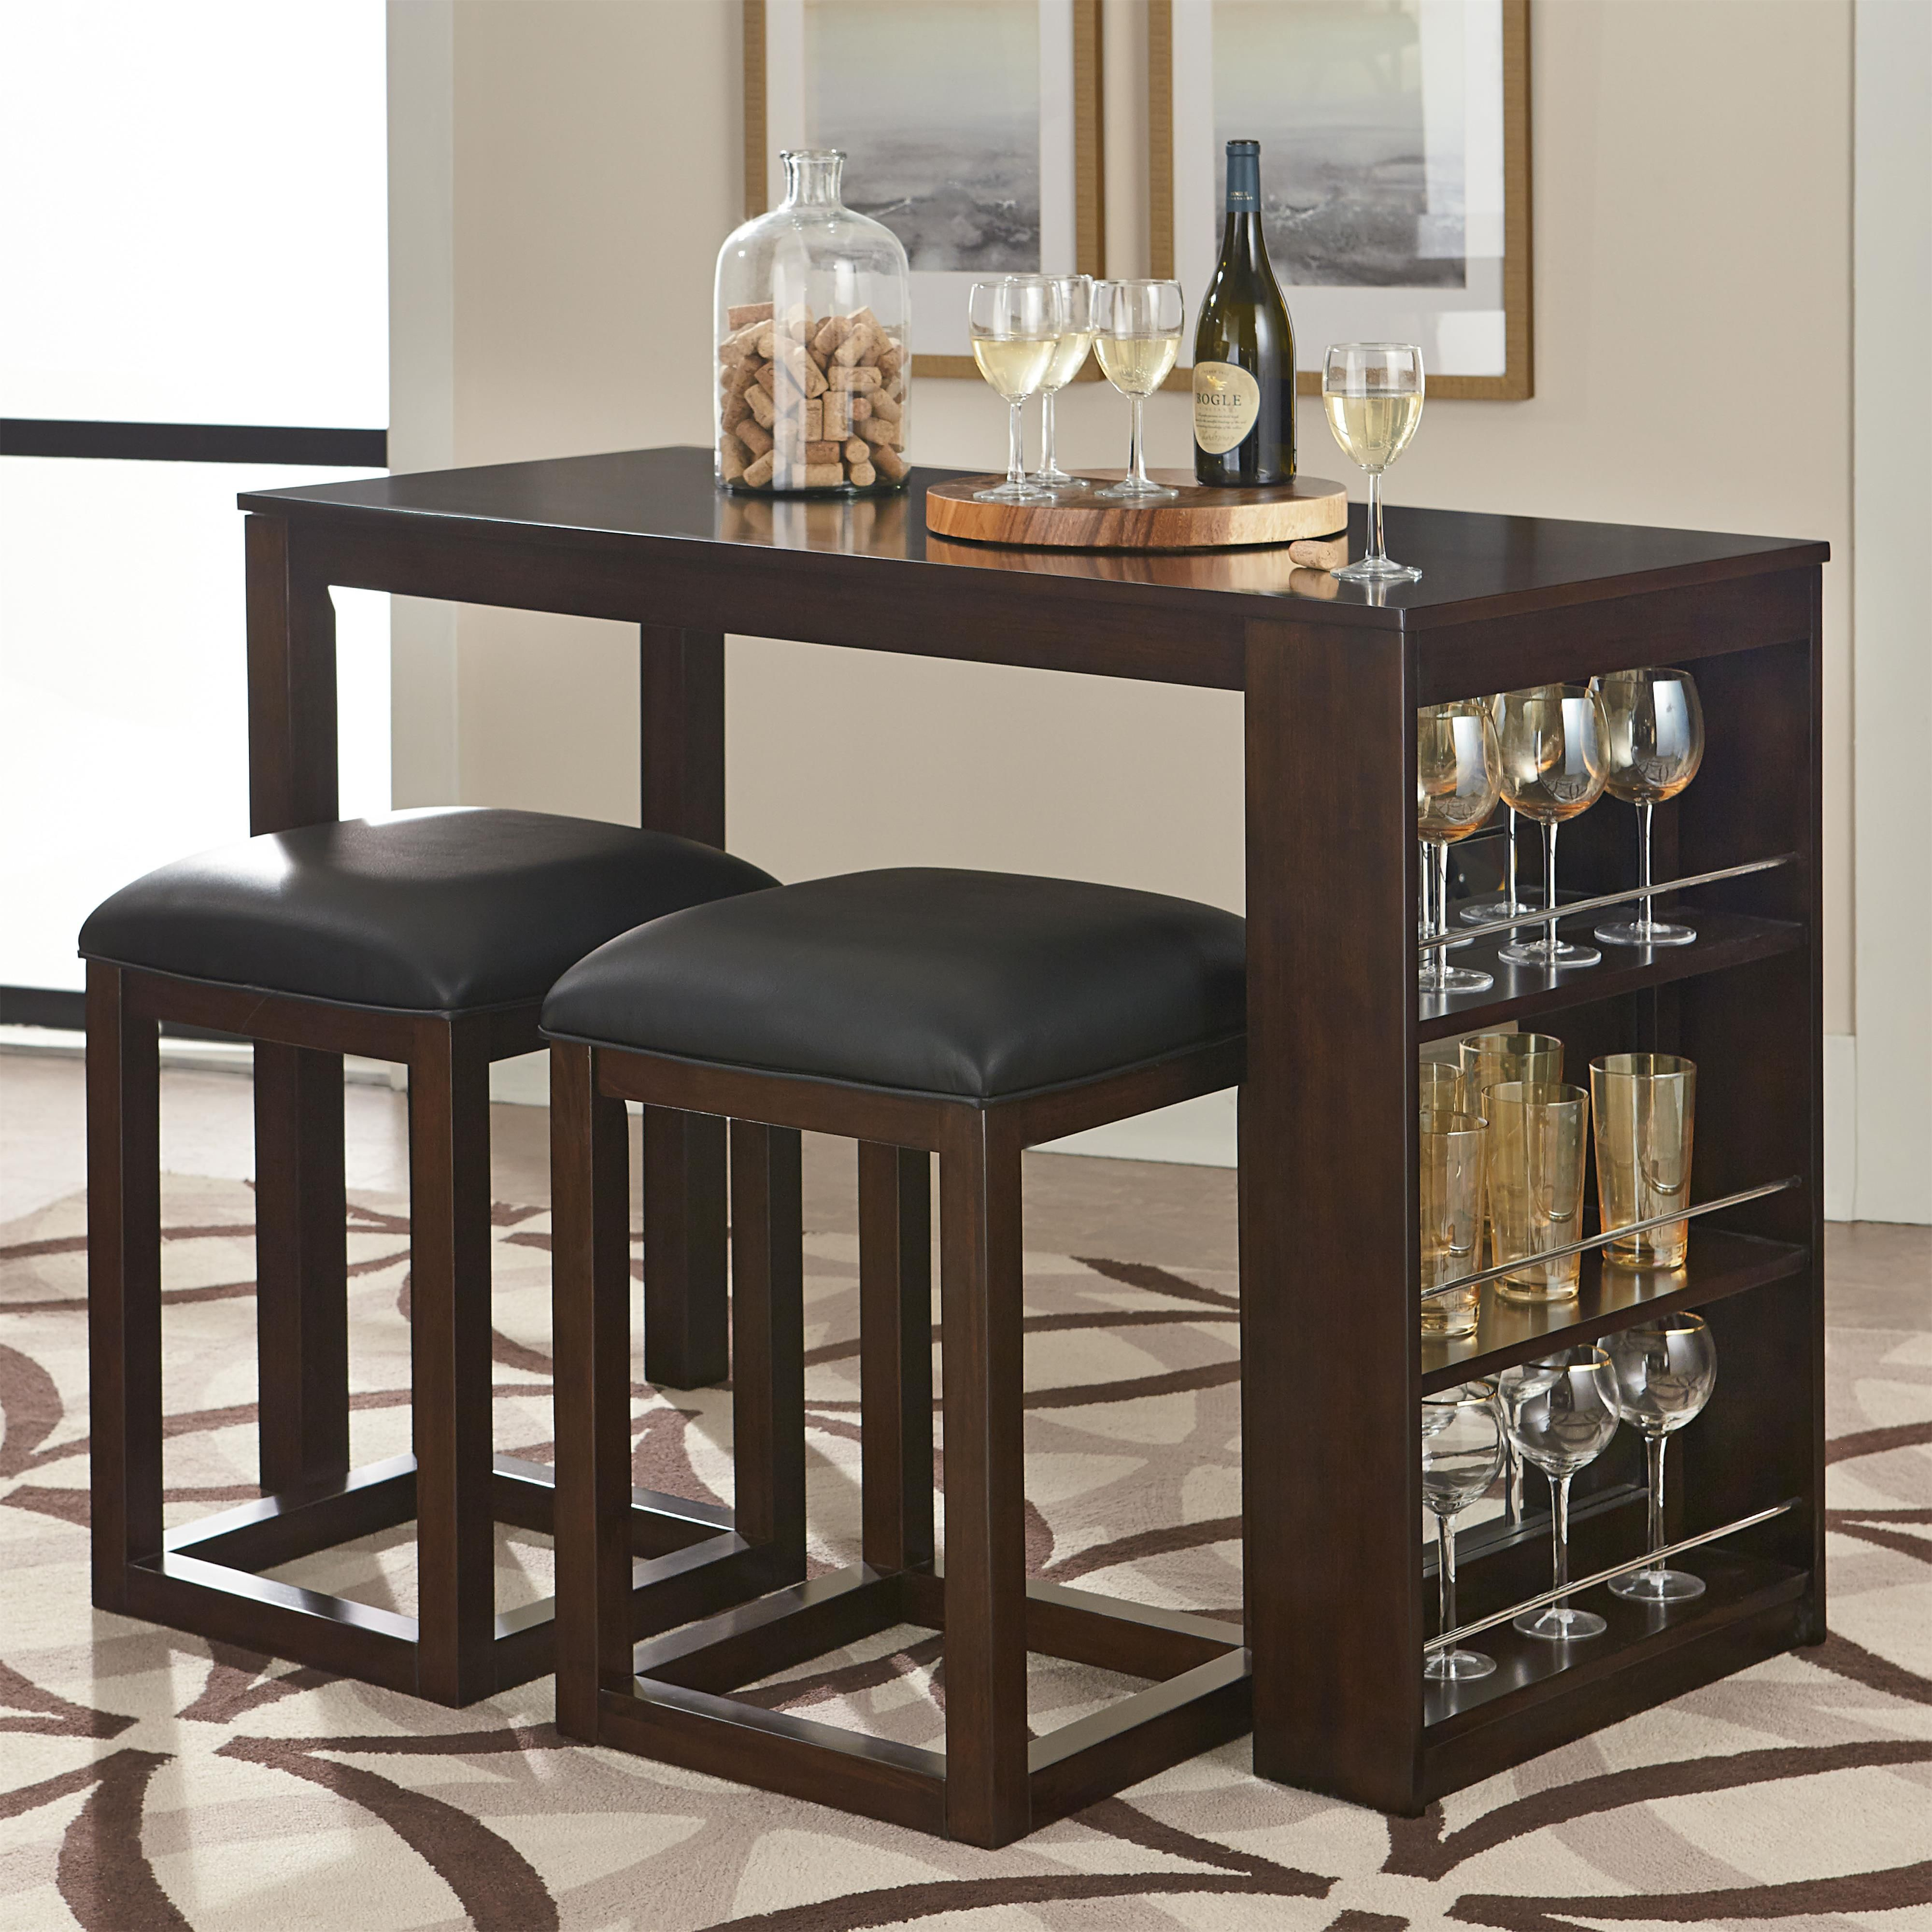 Porter 3 piece pub table and stool set by standard furniture porter 3 piece pub table and stool set by standard furniture watchthetrailerfo